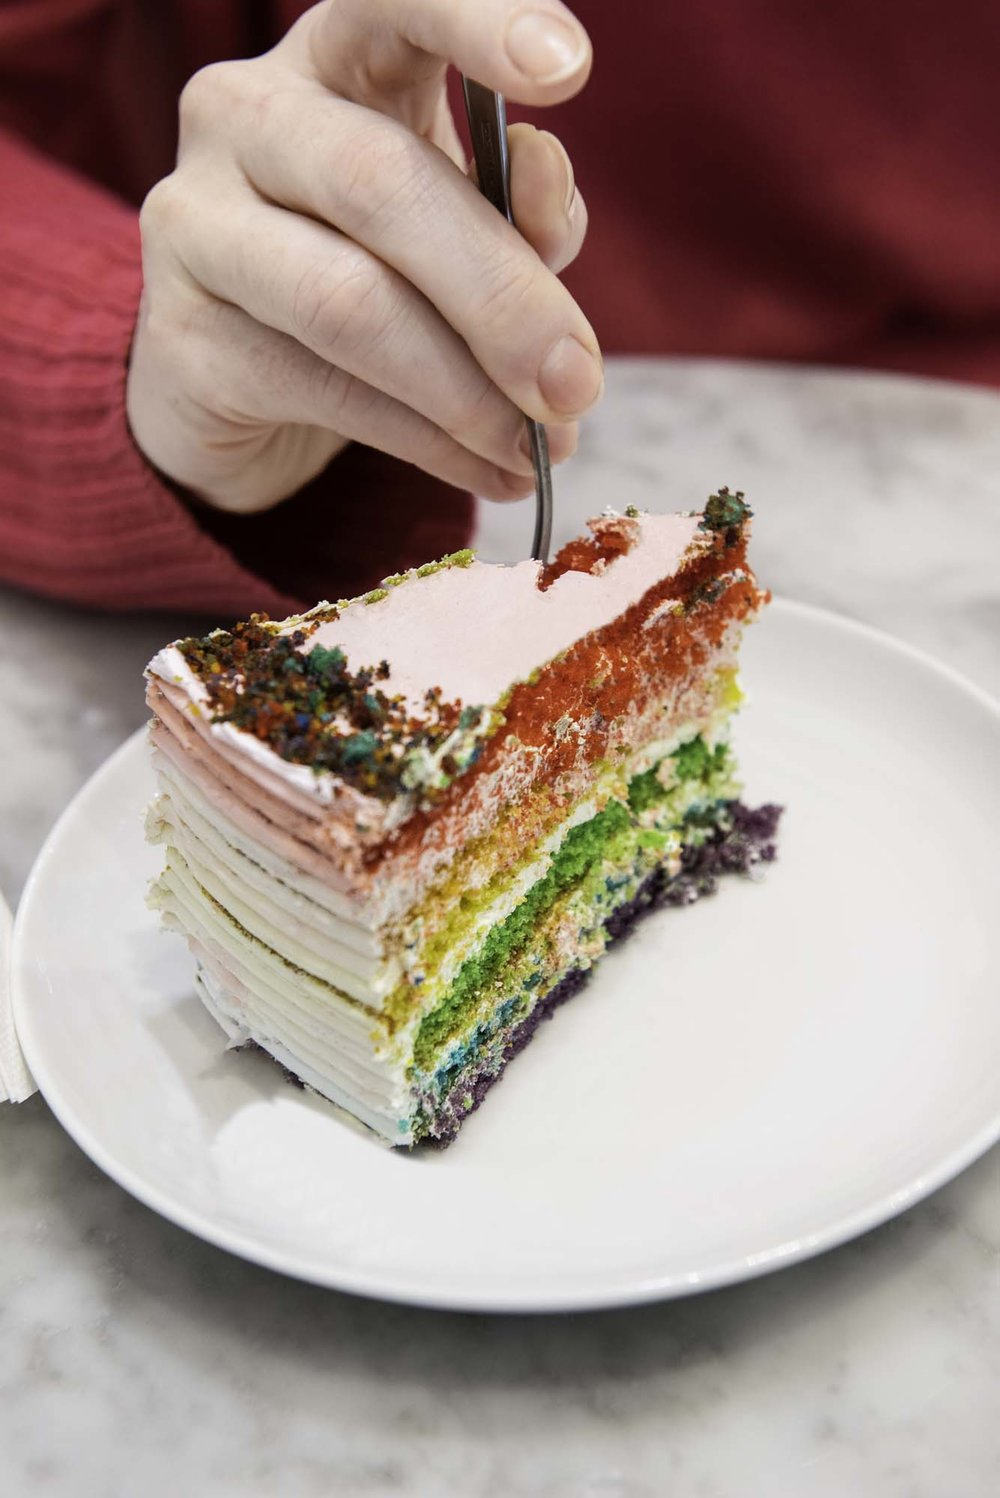 Rainbow cake at Bing Bing Cafe, Barcelona